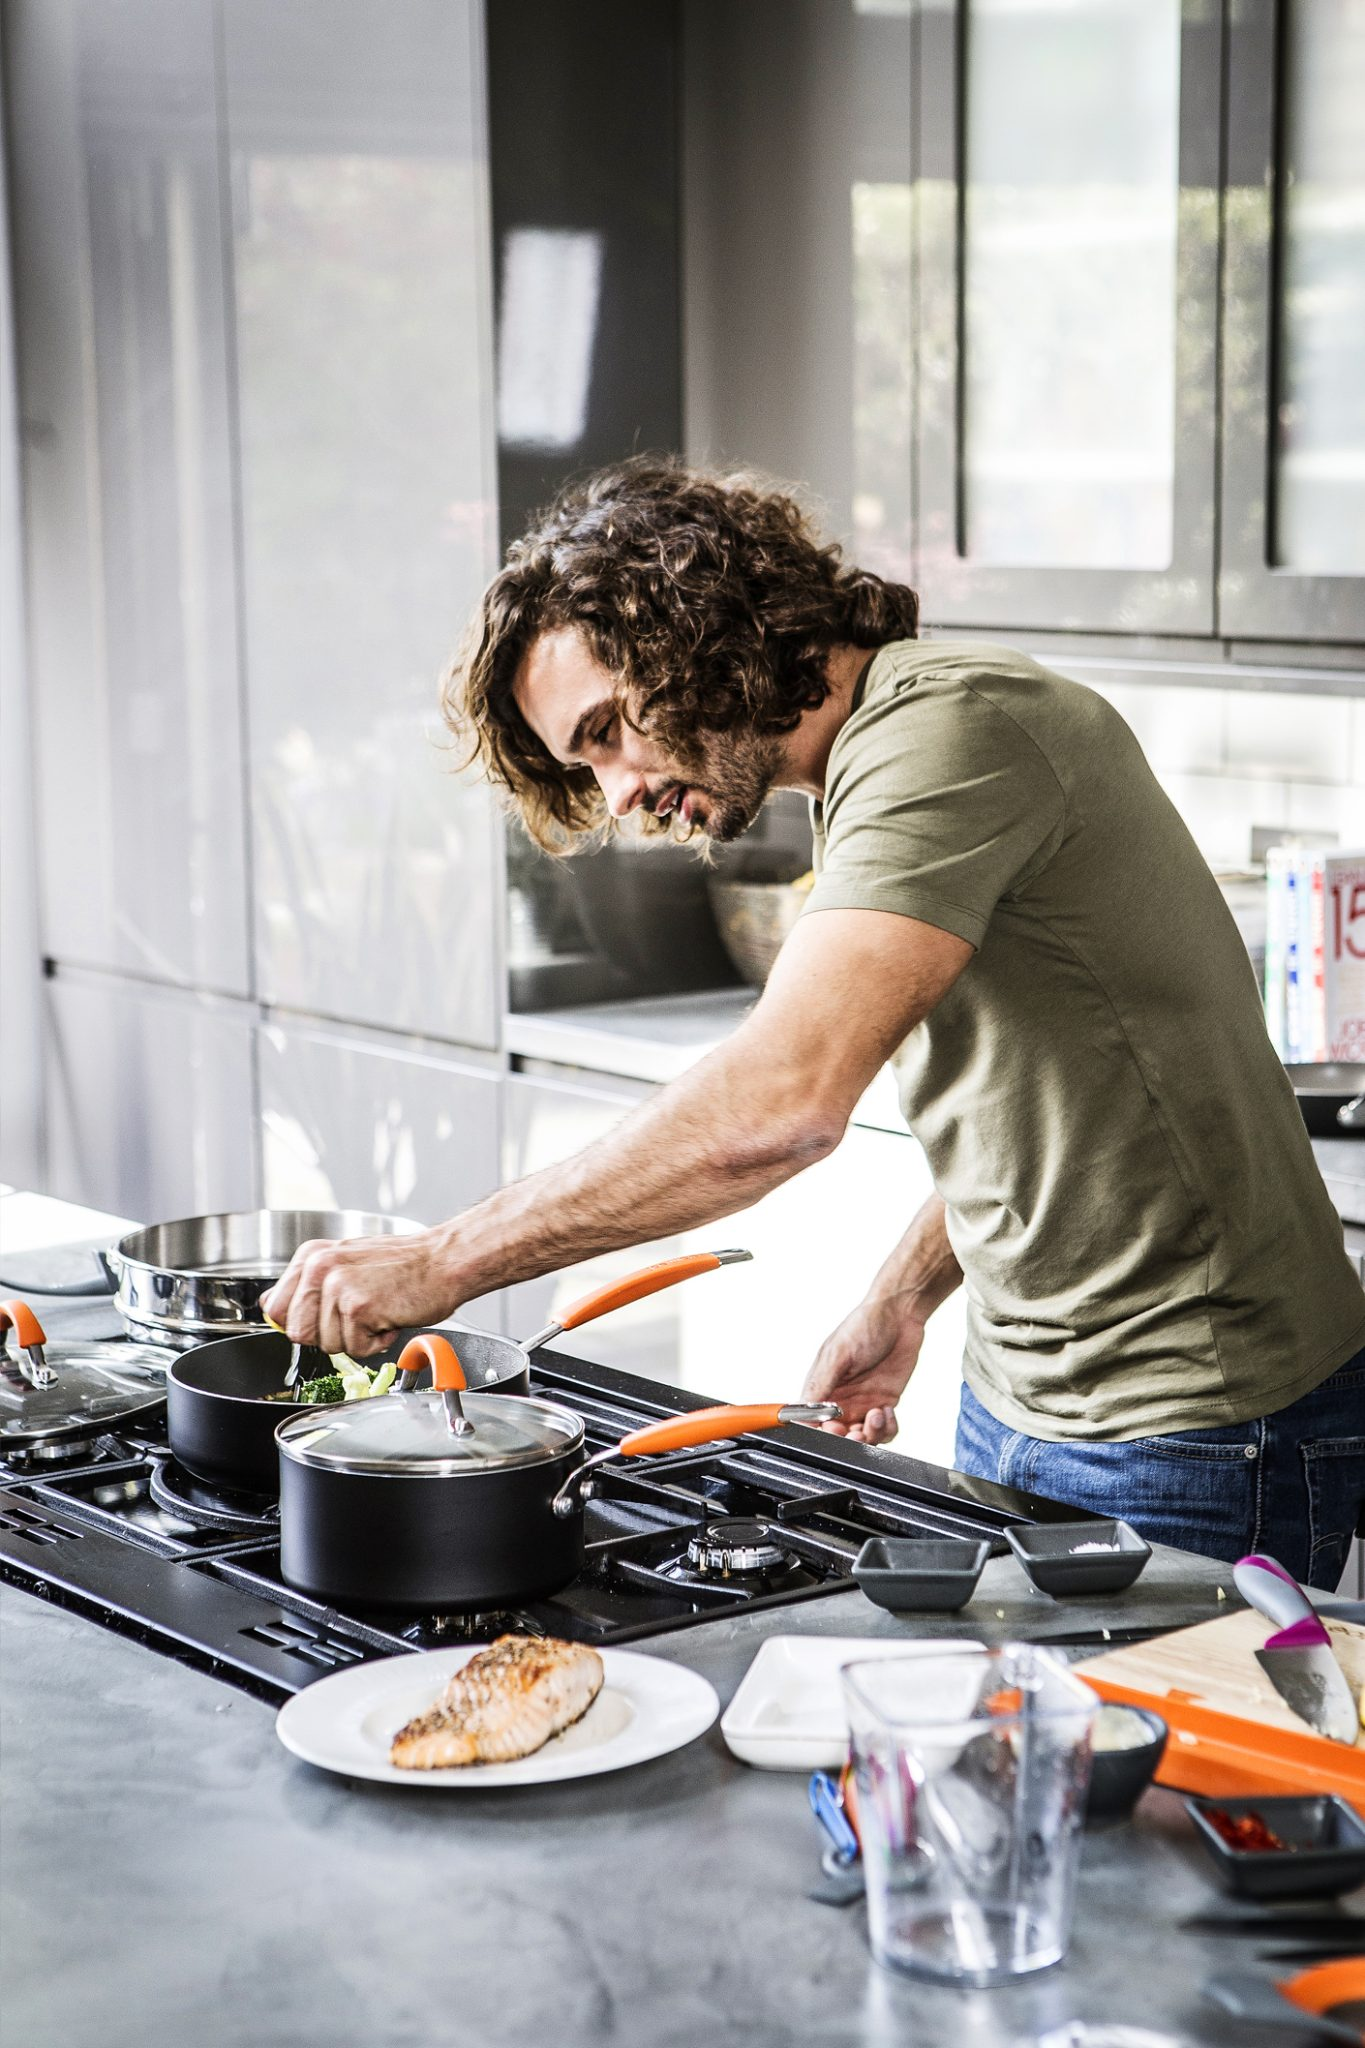 lifestyle-photography-of-Joe-Wicks-The-Body-Coach-using-his-new-cookware-range